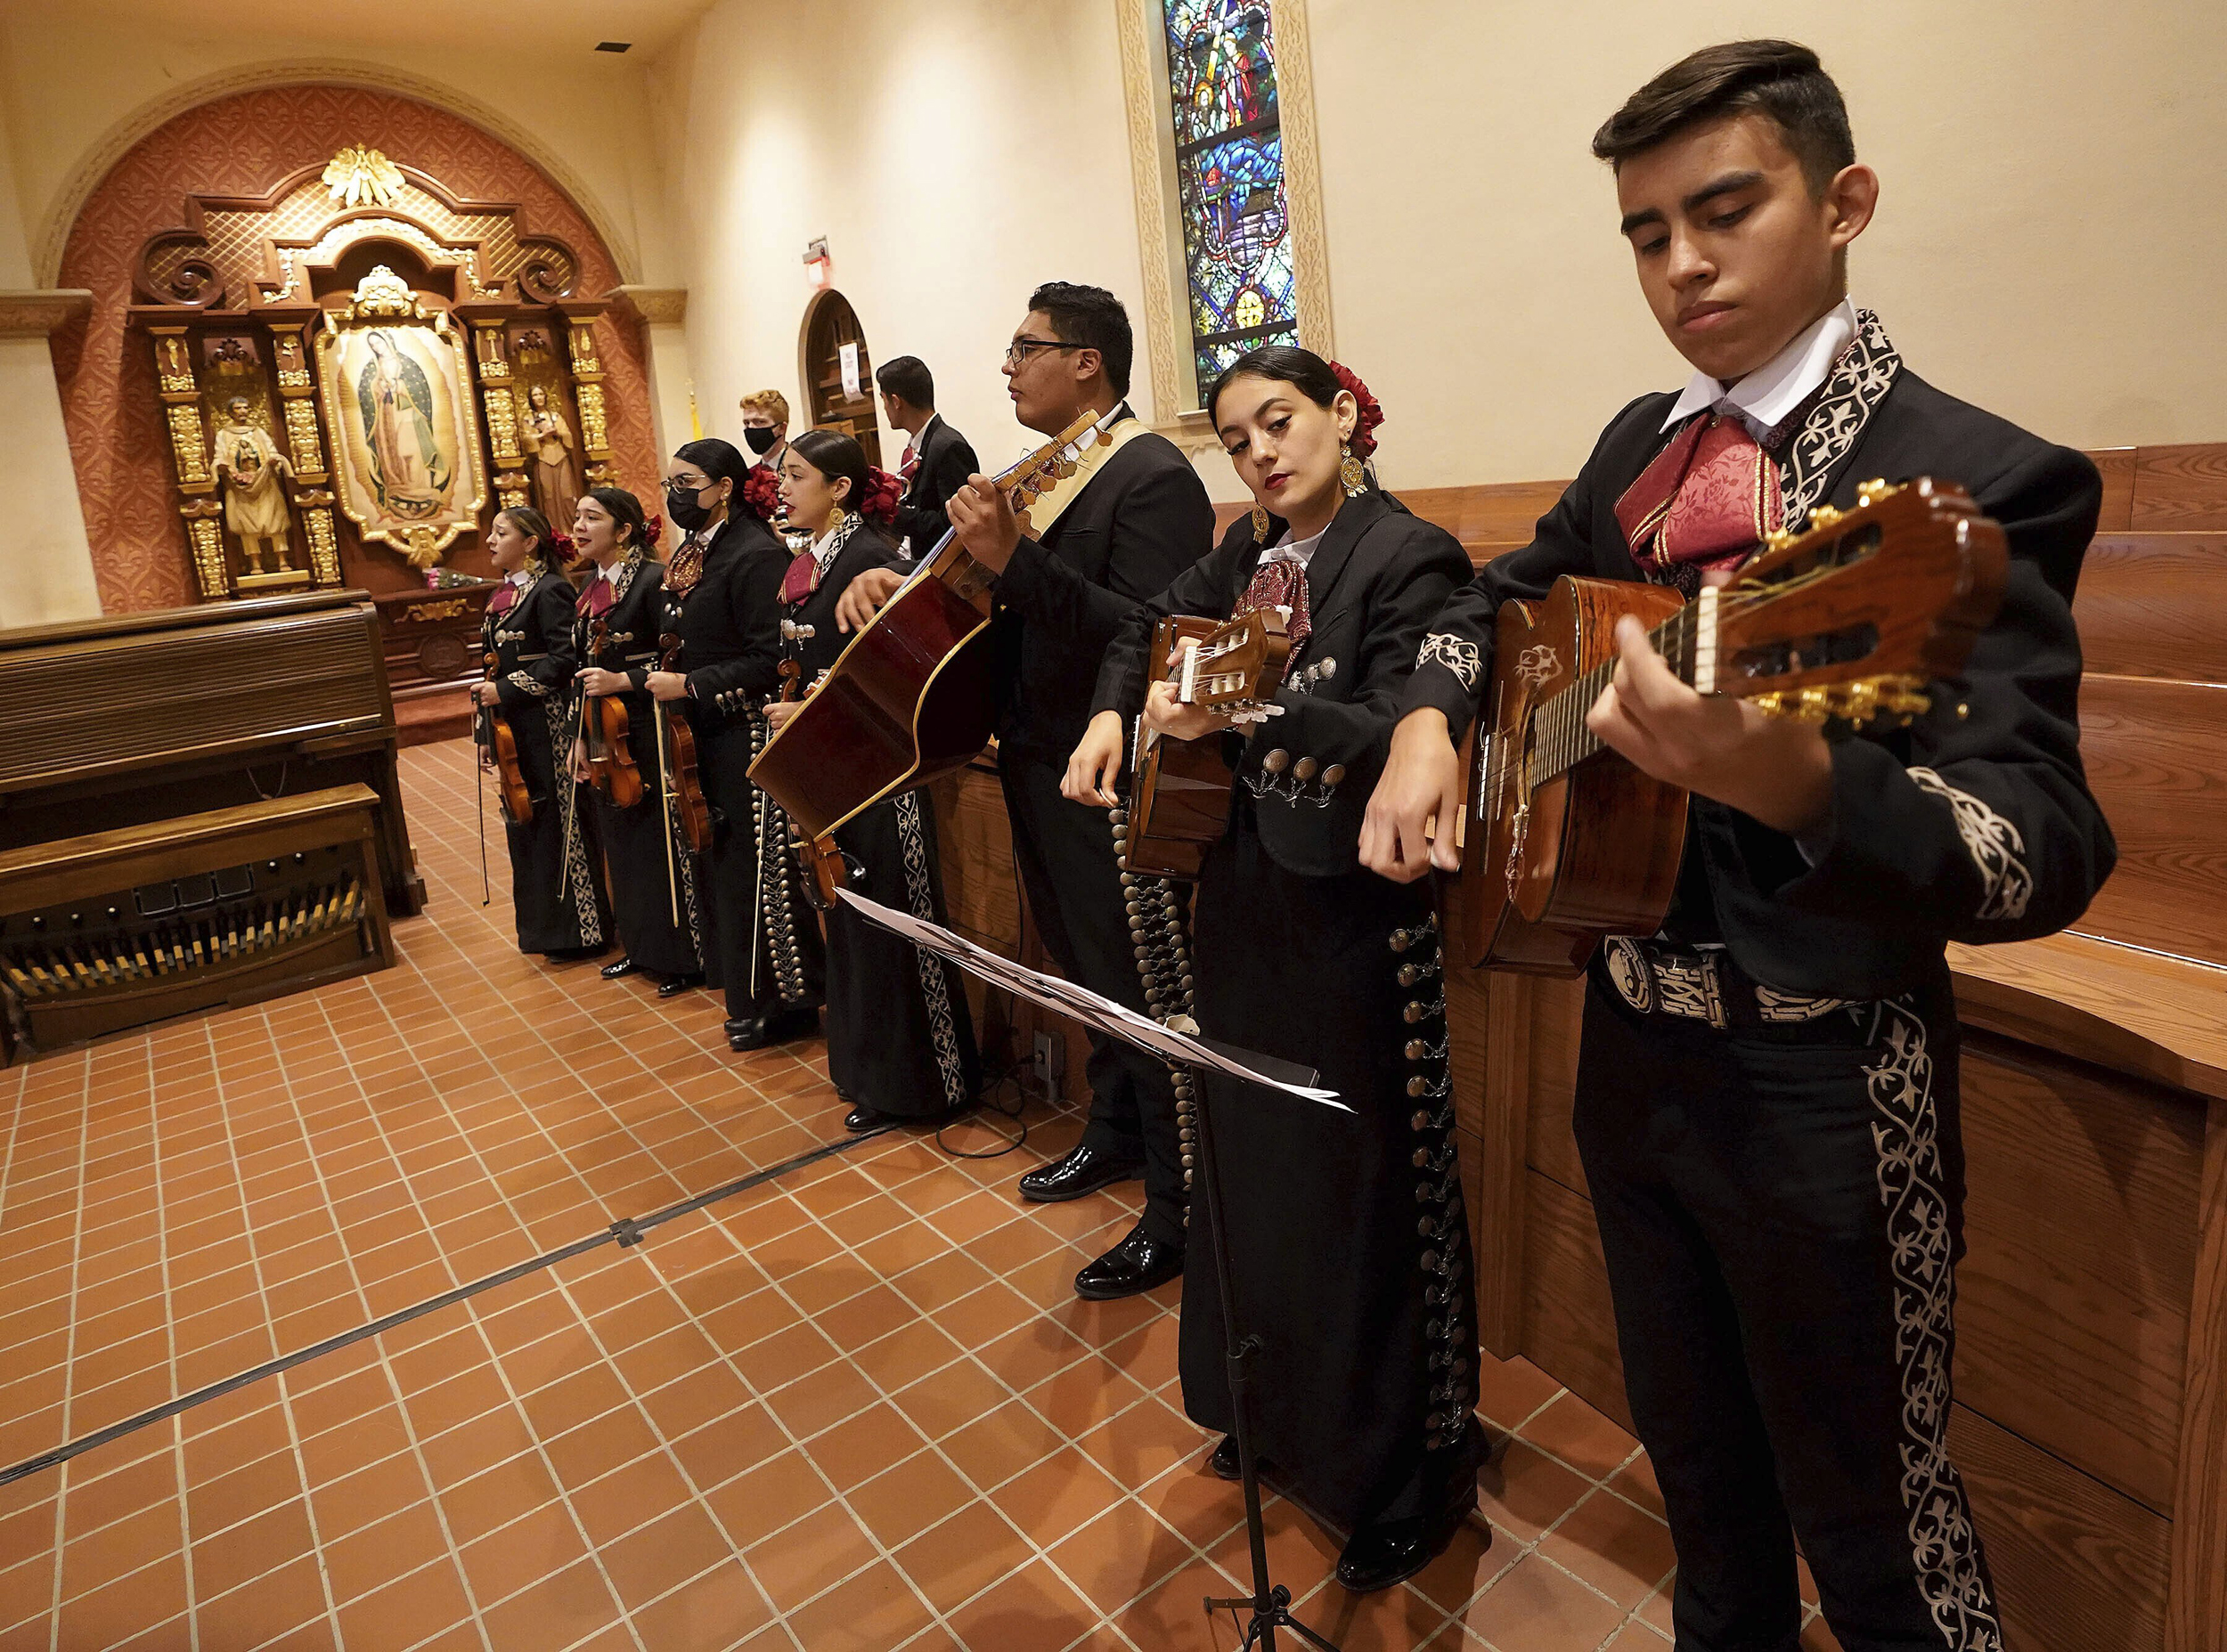 Mariachis on Sunday mass are back at this Tucson church after a Covid hiatus